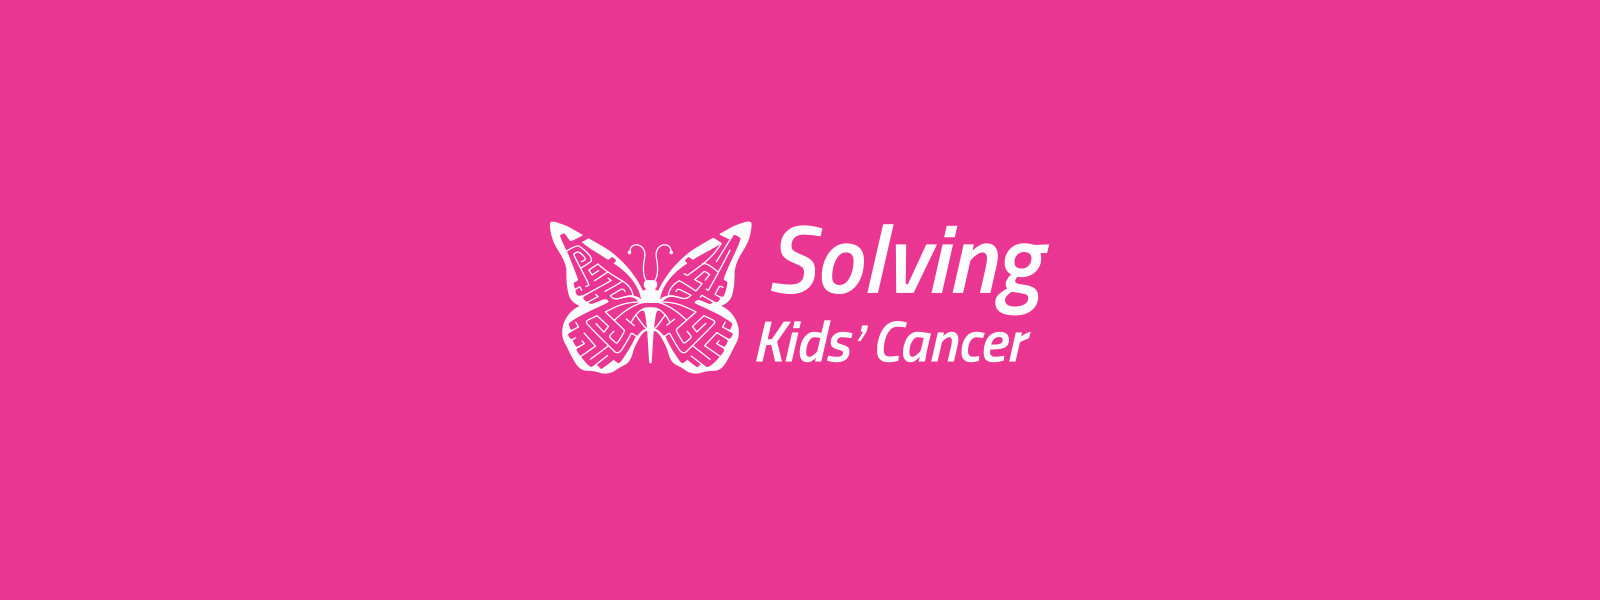 Pink background with Solving Kids Cancer logo